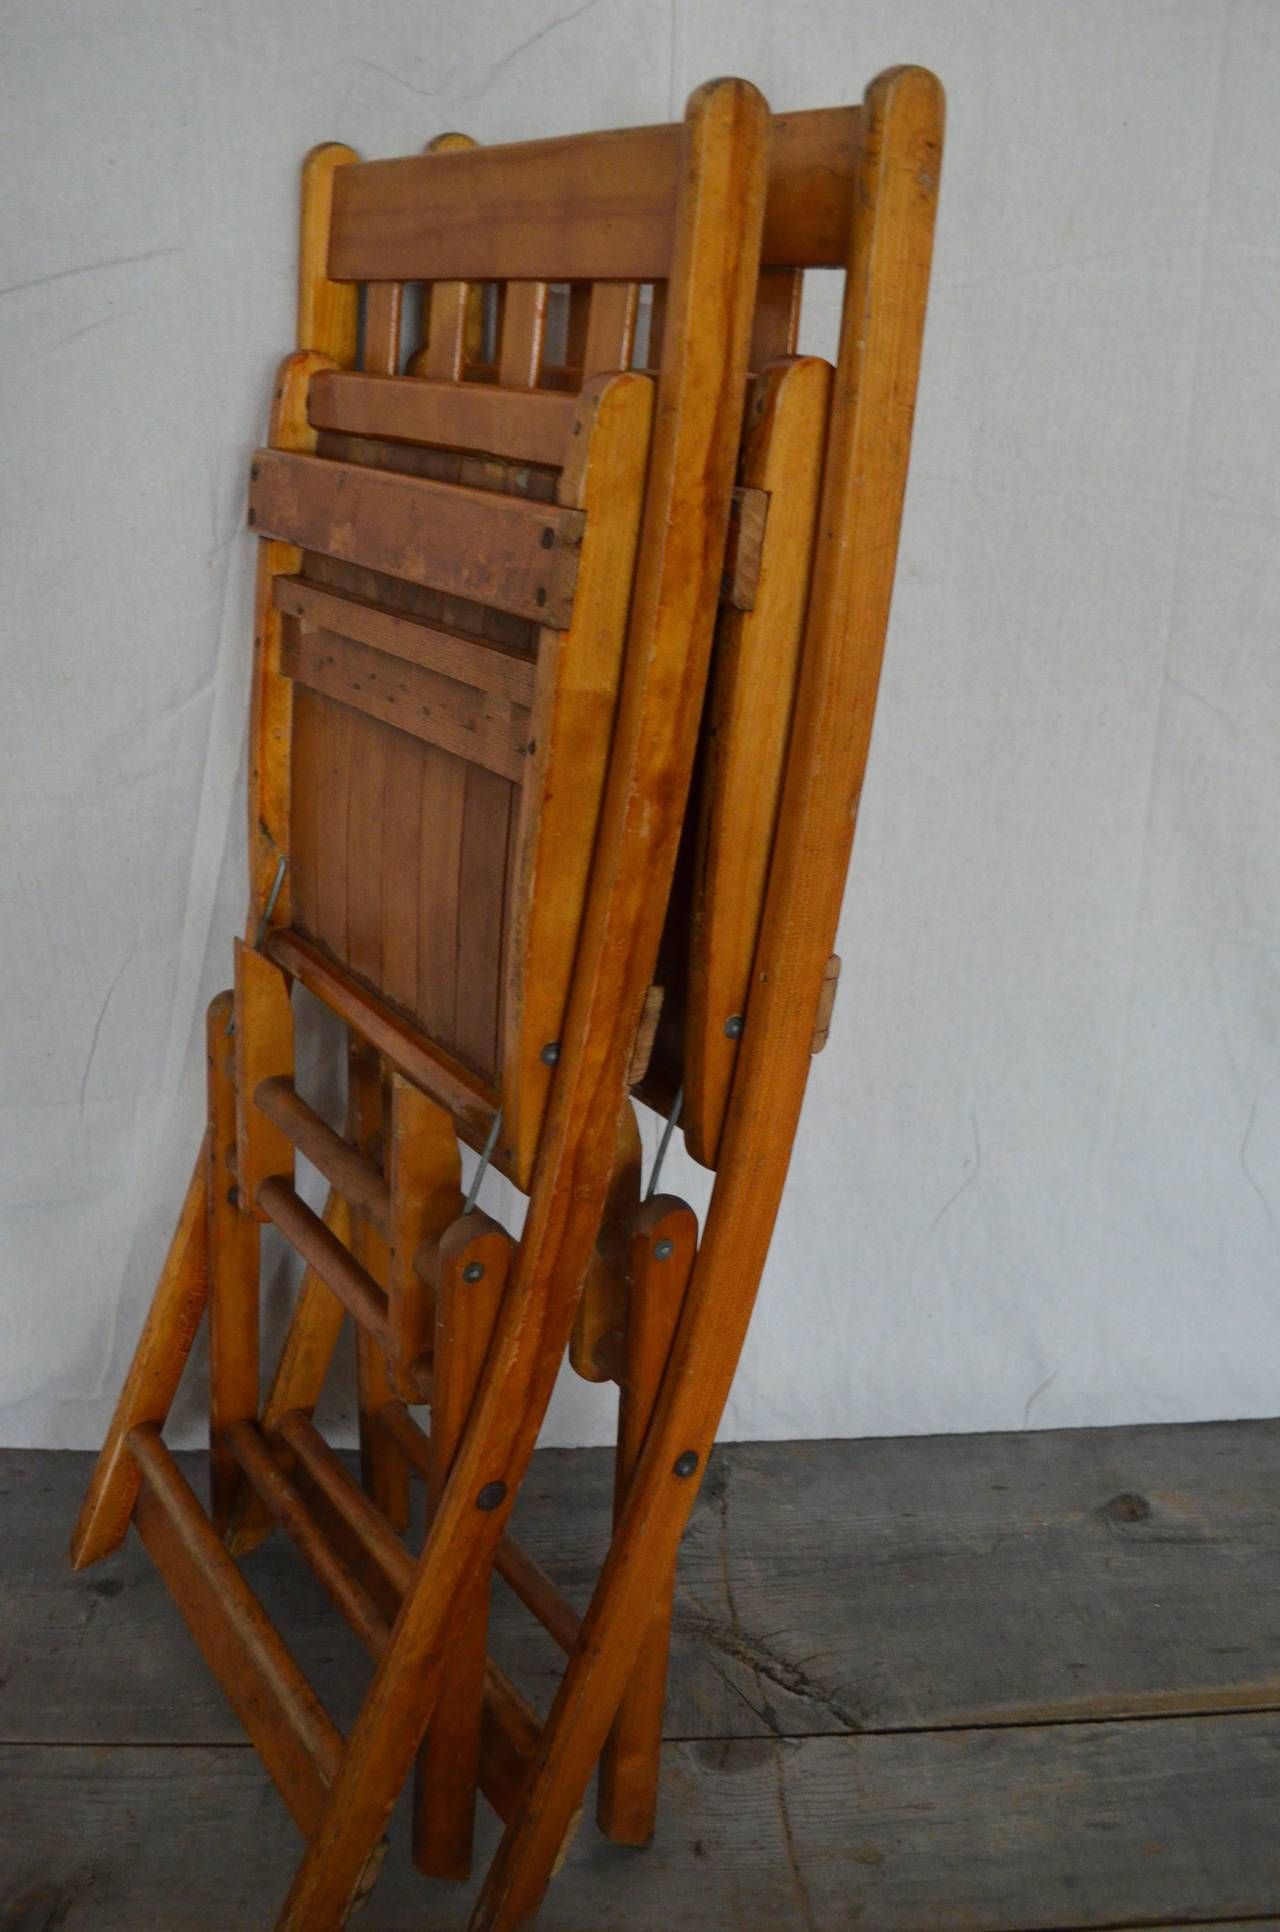 1930s Maple Folding Chair from Midwestern Armory 300 avail